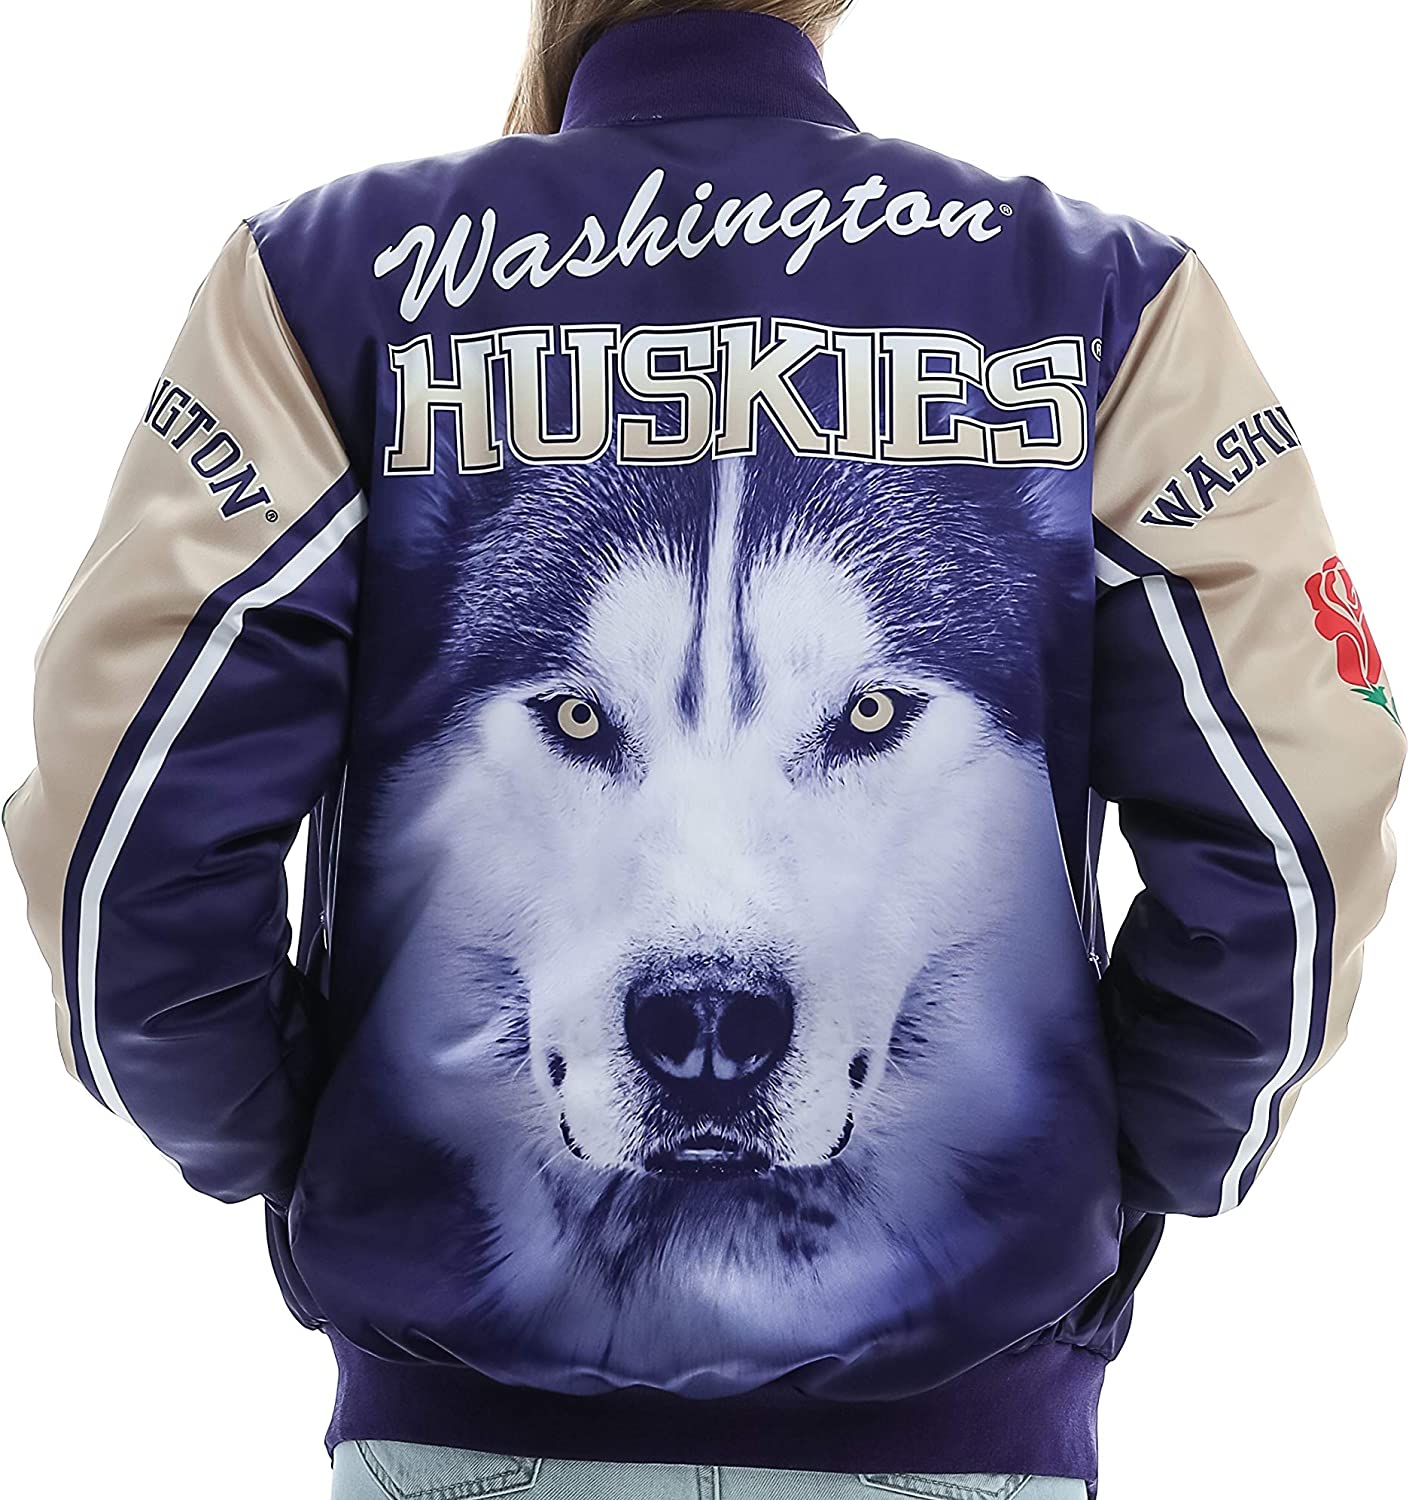 Twin Vision Activewear Washington Huskies Satin Bomber Jacket (Rose)